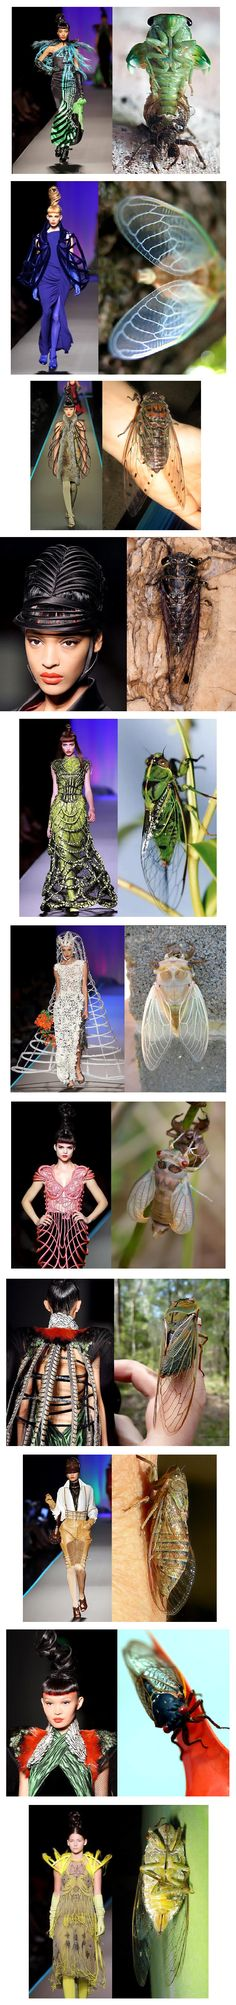 Jean Paul Gaultier—Given the cicada's amazing ability to transform itself by emerging from it's former self into something amazing, it's not hard to draw the correlation between Gaultier's attempt to take something old and dated by breathing new life into it. I say, bravo Jean Paul.